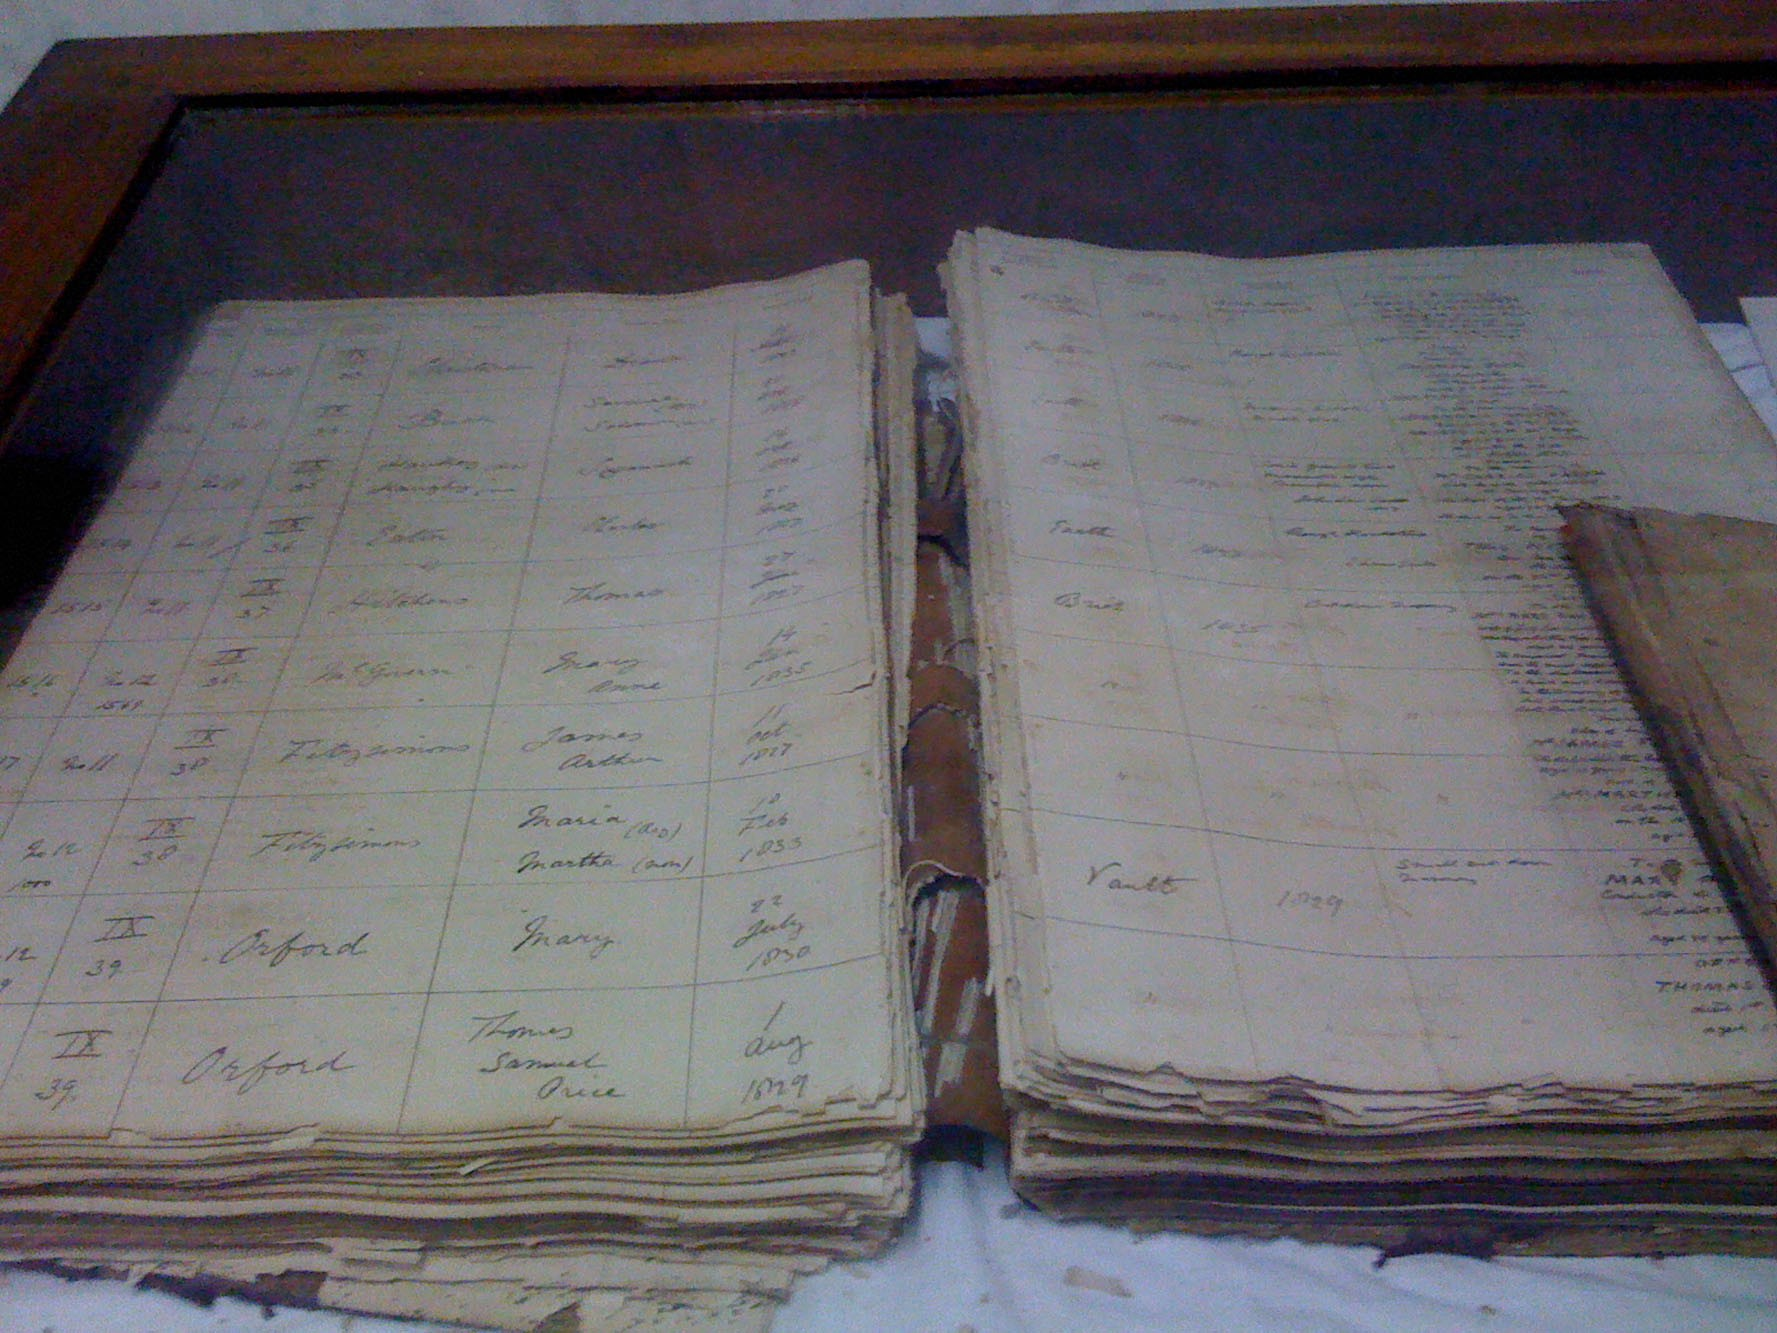 Saint Mary's Marriage Register - First entry is for Elihu Yale, who gave his name to Yale University, USA